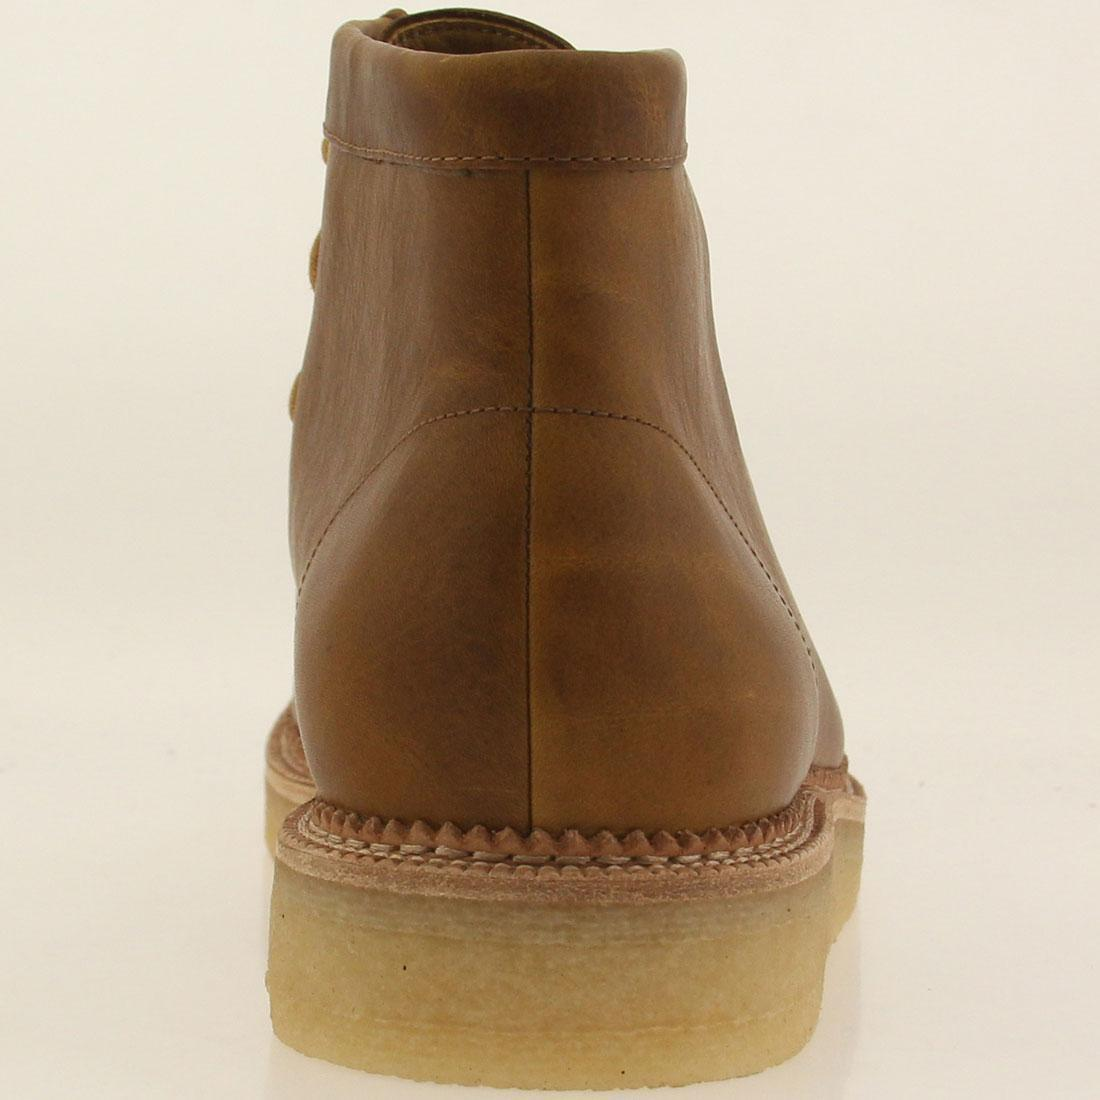 214.00 brown Clarks Uomo Beckery Hike bronze brown 214.00 leather 26110048 f2e9fd